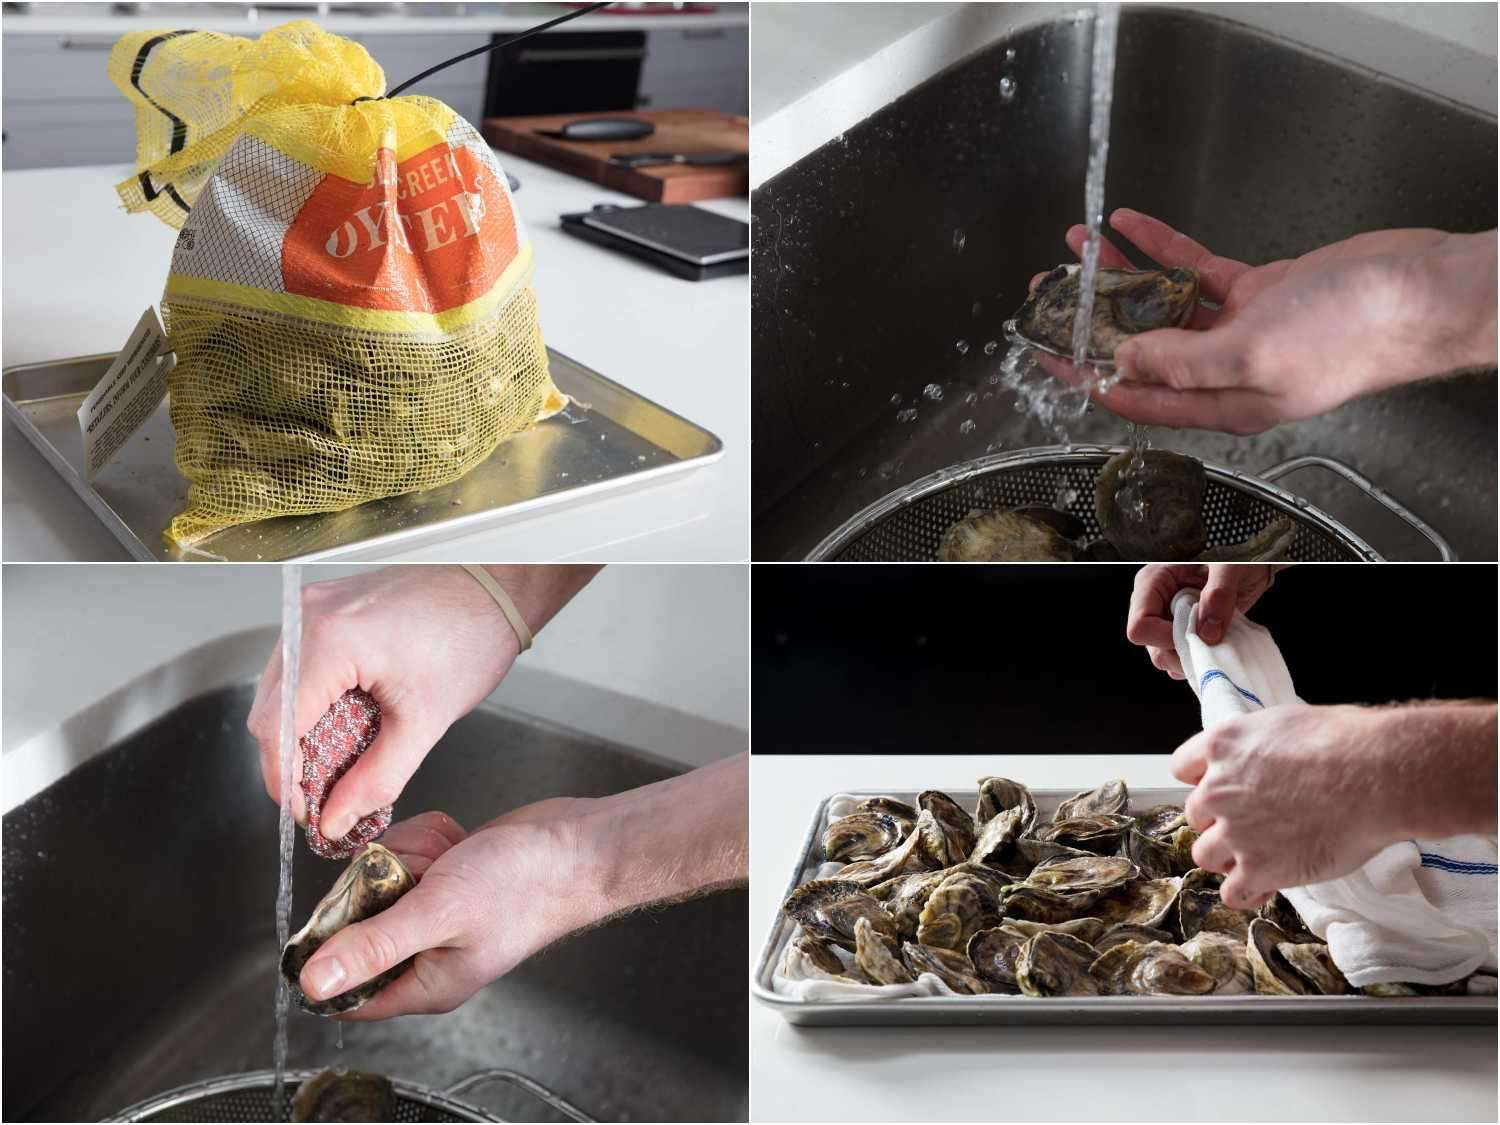 Scrubbing and storing oysters